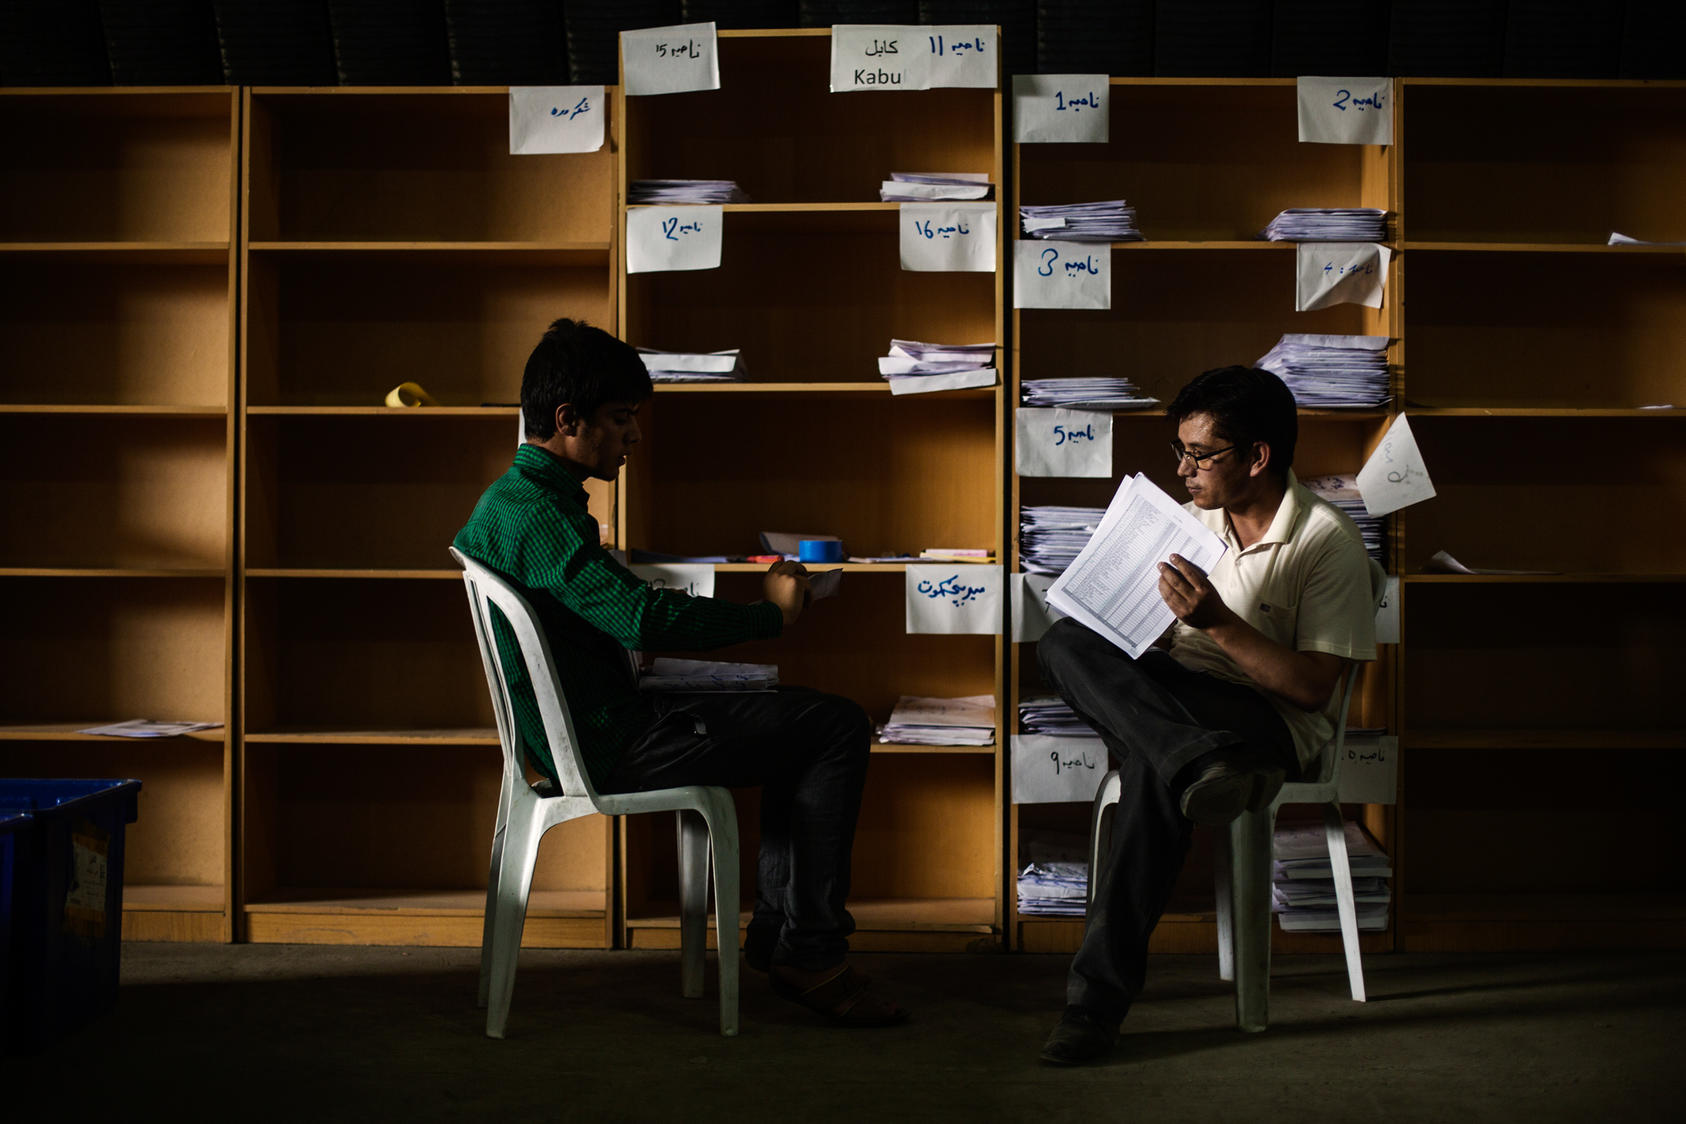 Independent Election Commission workers audit ballots from the disputed presidential runoff, in Kabul, Afghanistan, July 17, 2014. United Nations officials and international diplomats are monitoring the process, as well as representatives of the two candidates, Ashraf Ghani and Abdullah Abdullah. (Diego Ibarra Sanchez/The New York Times)